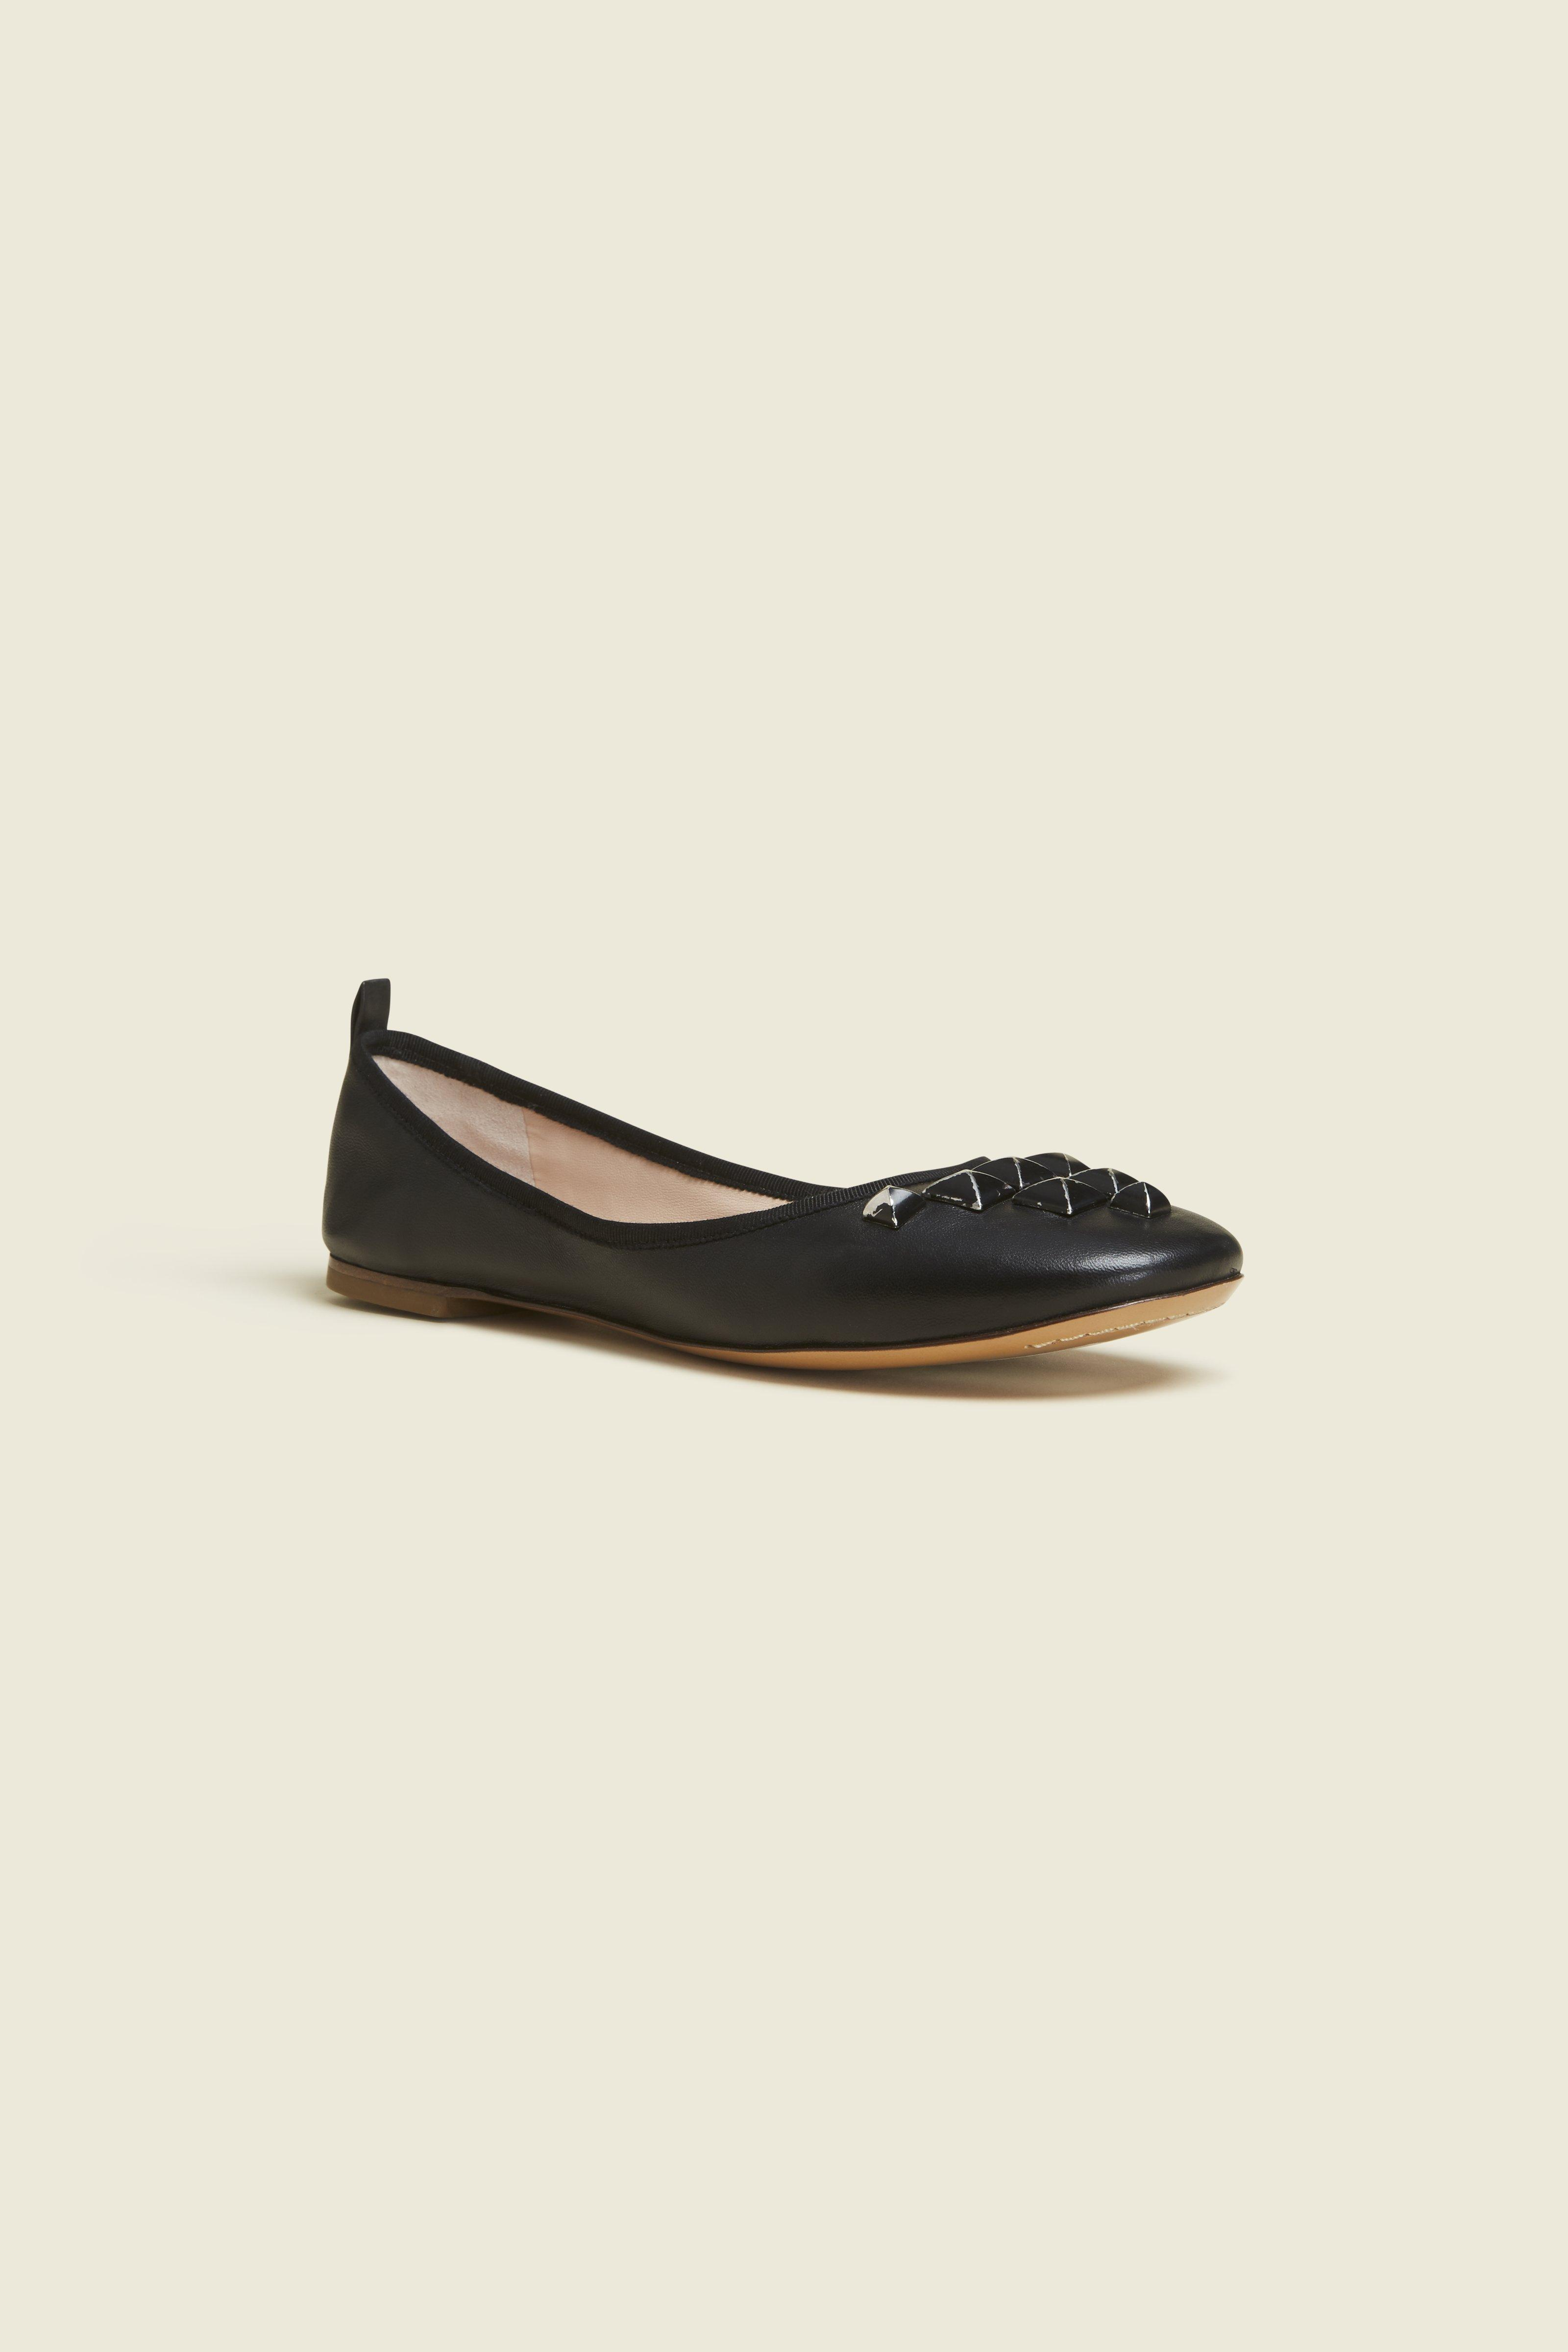 Cleo Studded Leather Ballerina Flats in Black